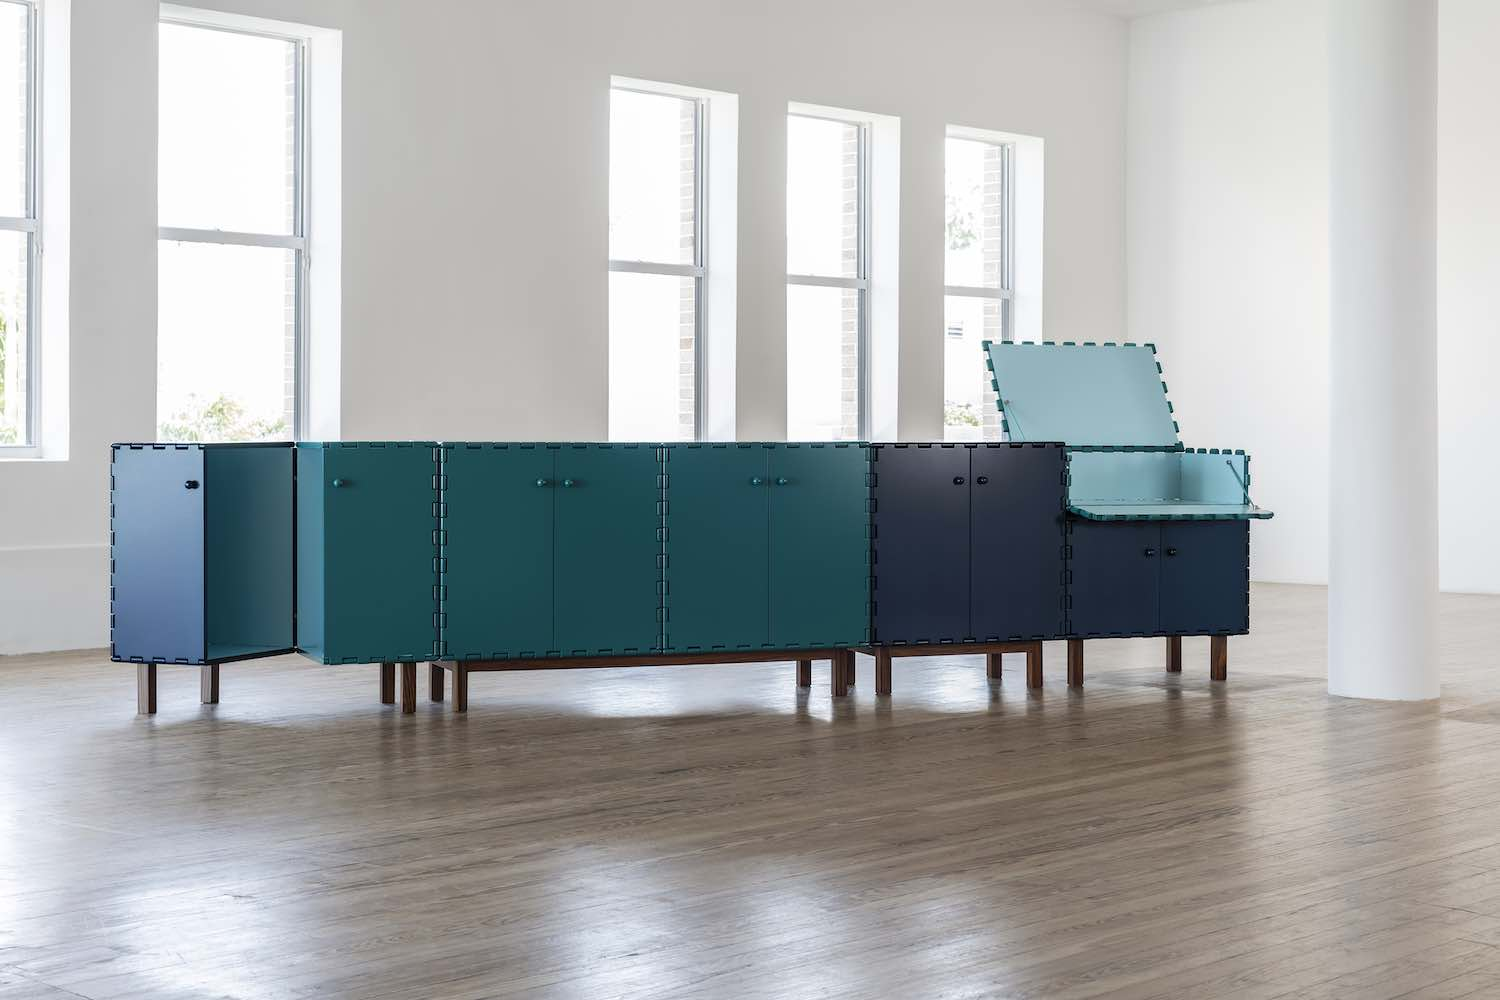 'Tangara' Collection by Luis Pons- Courtesy of Luis Pons.